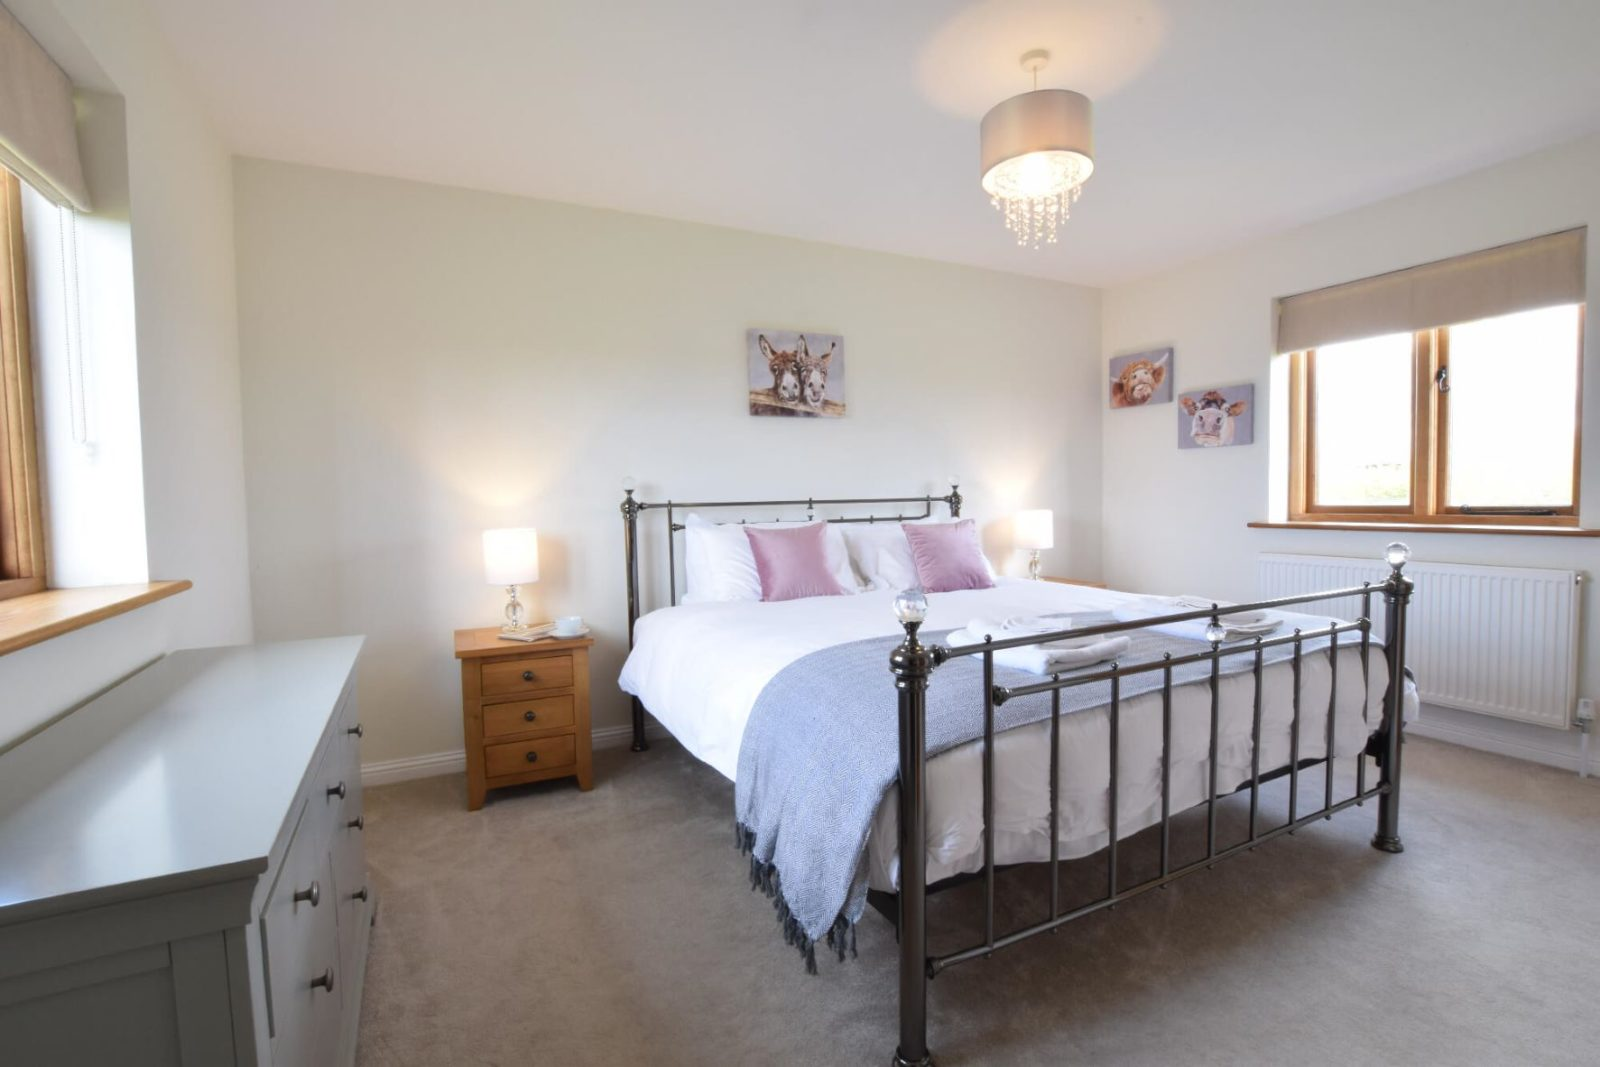 The Mulberry Master Bedroom